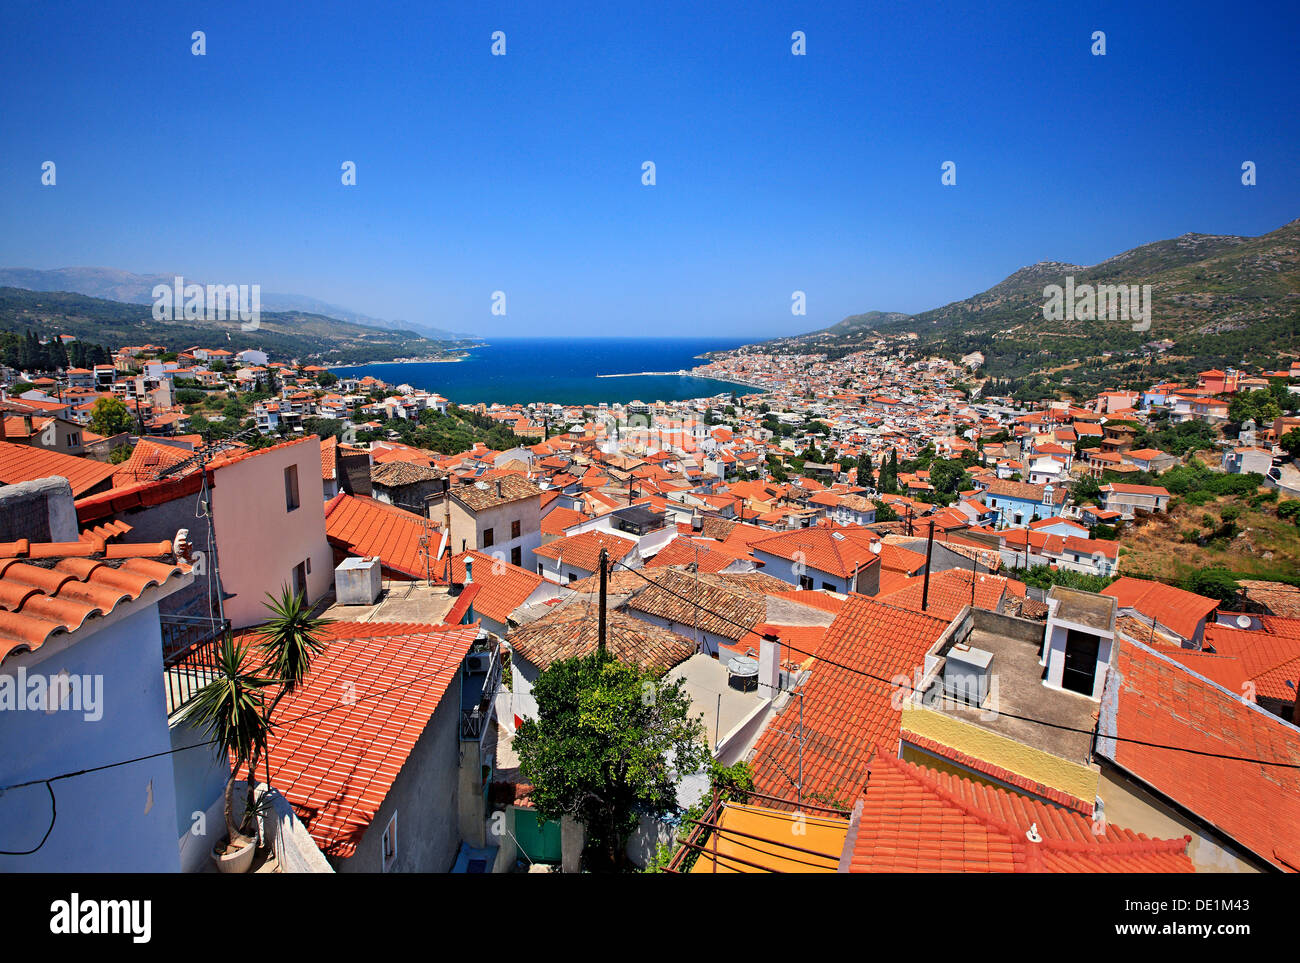 Panoramic view of Samos town ('Vathi'), Samos island, Aegean Sea, Greece. - Stock Image